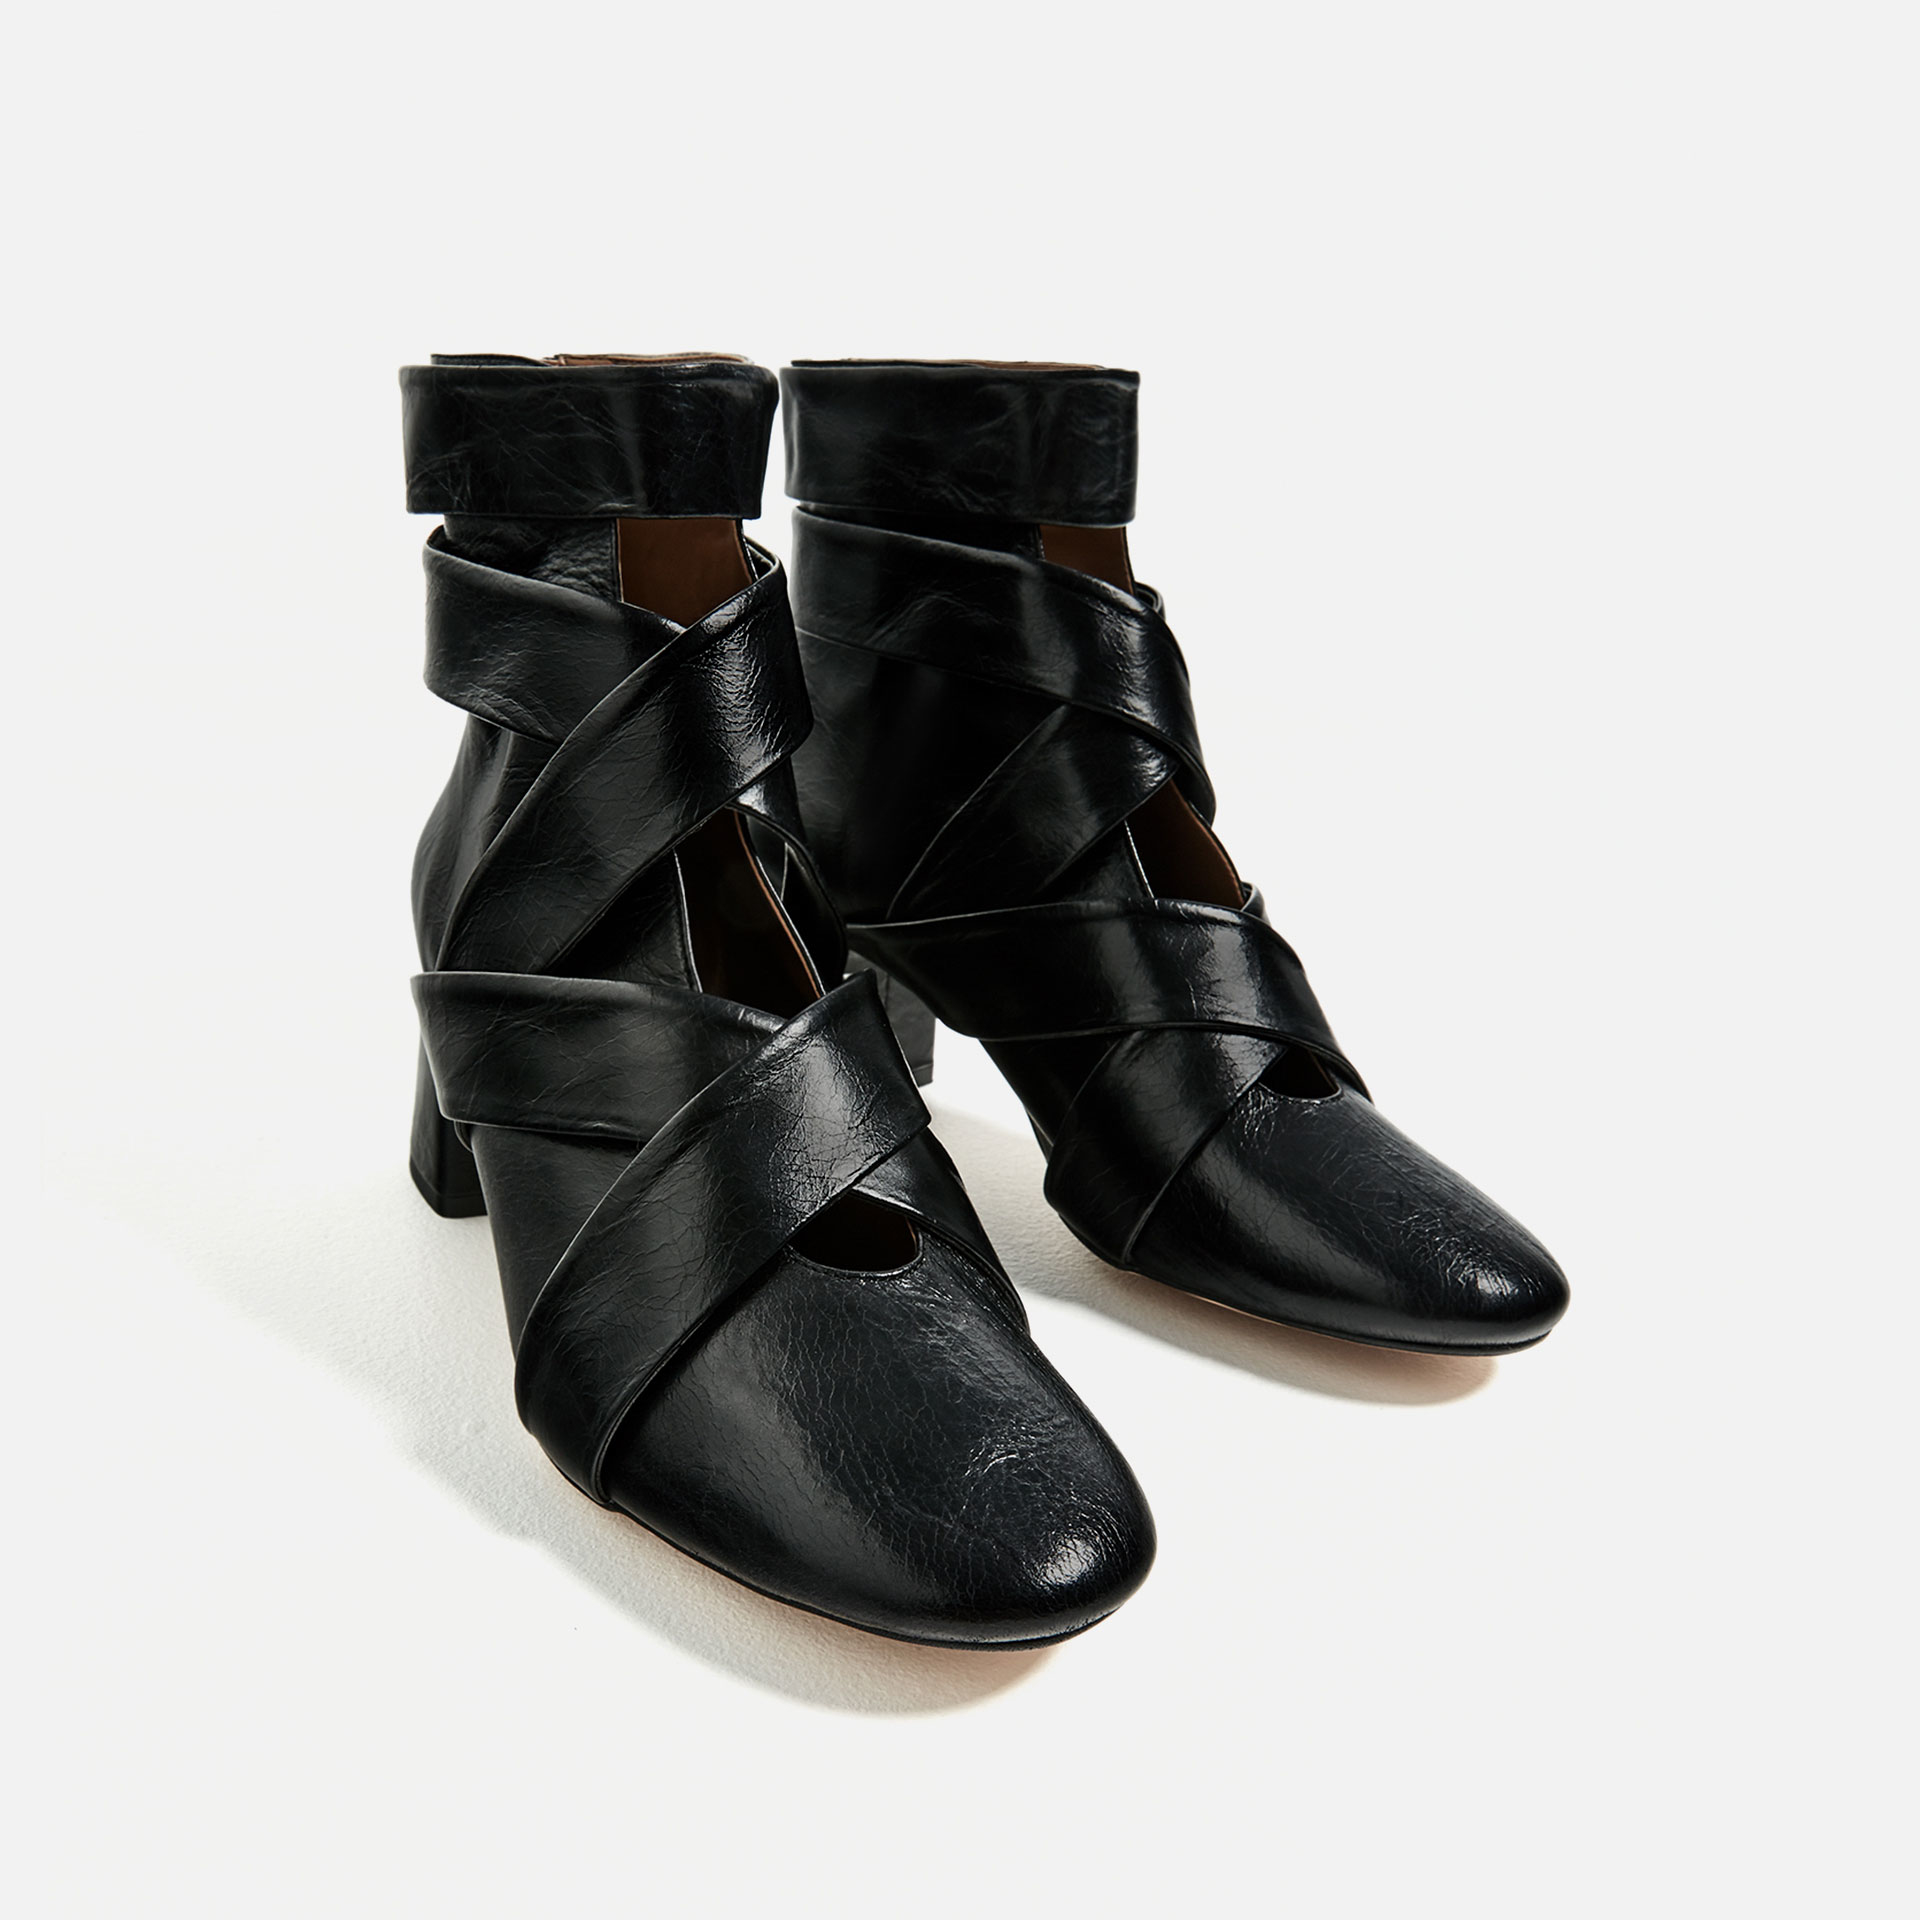 zara high heel leather ankle boots with straps in